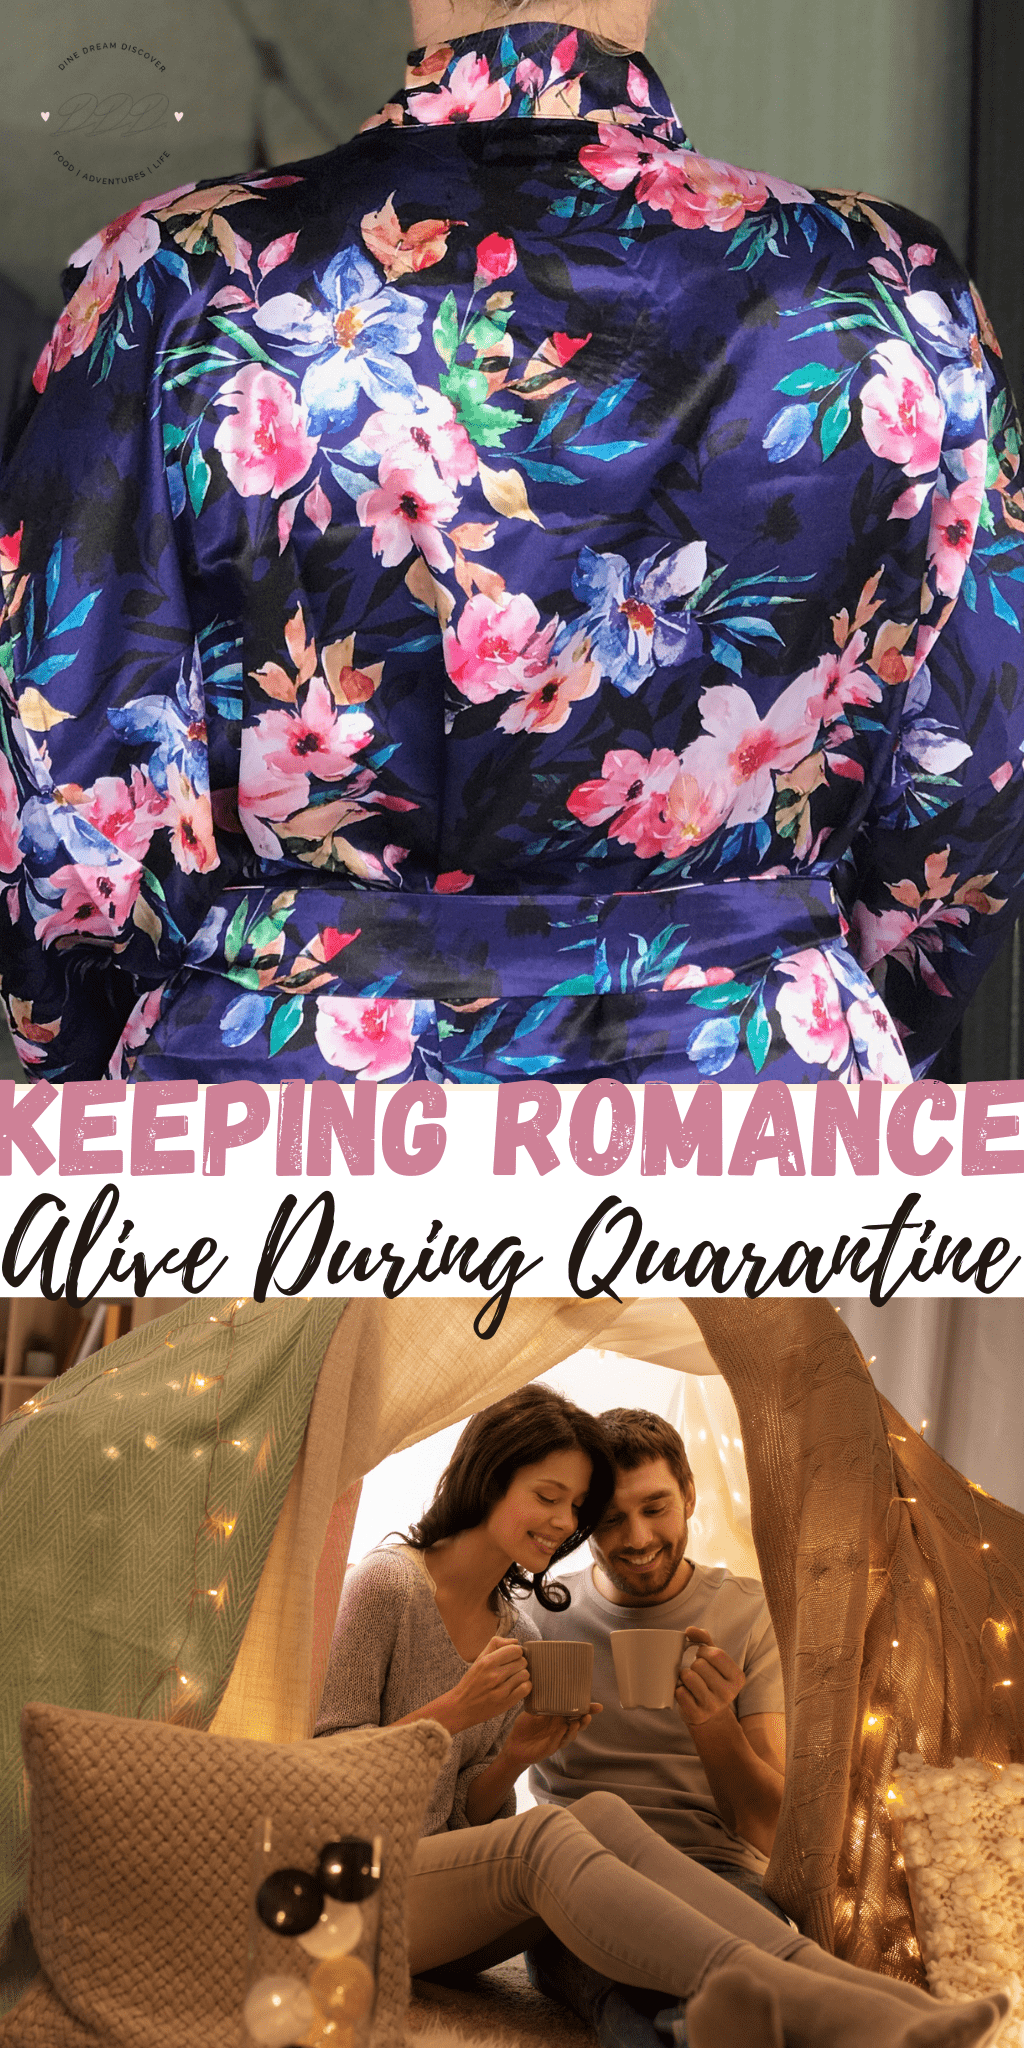 How to Keep the Romance Alive During Quarantine